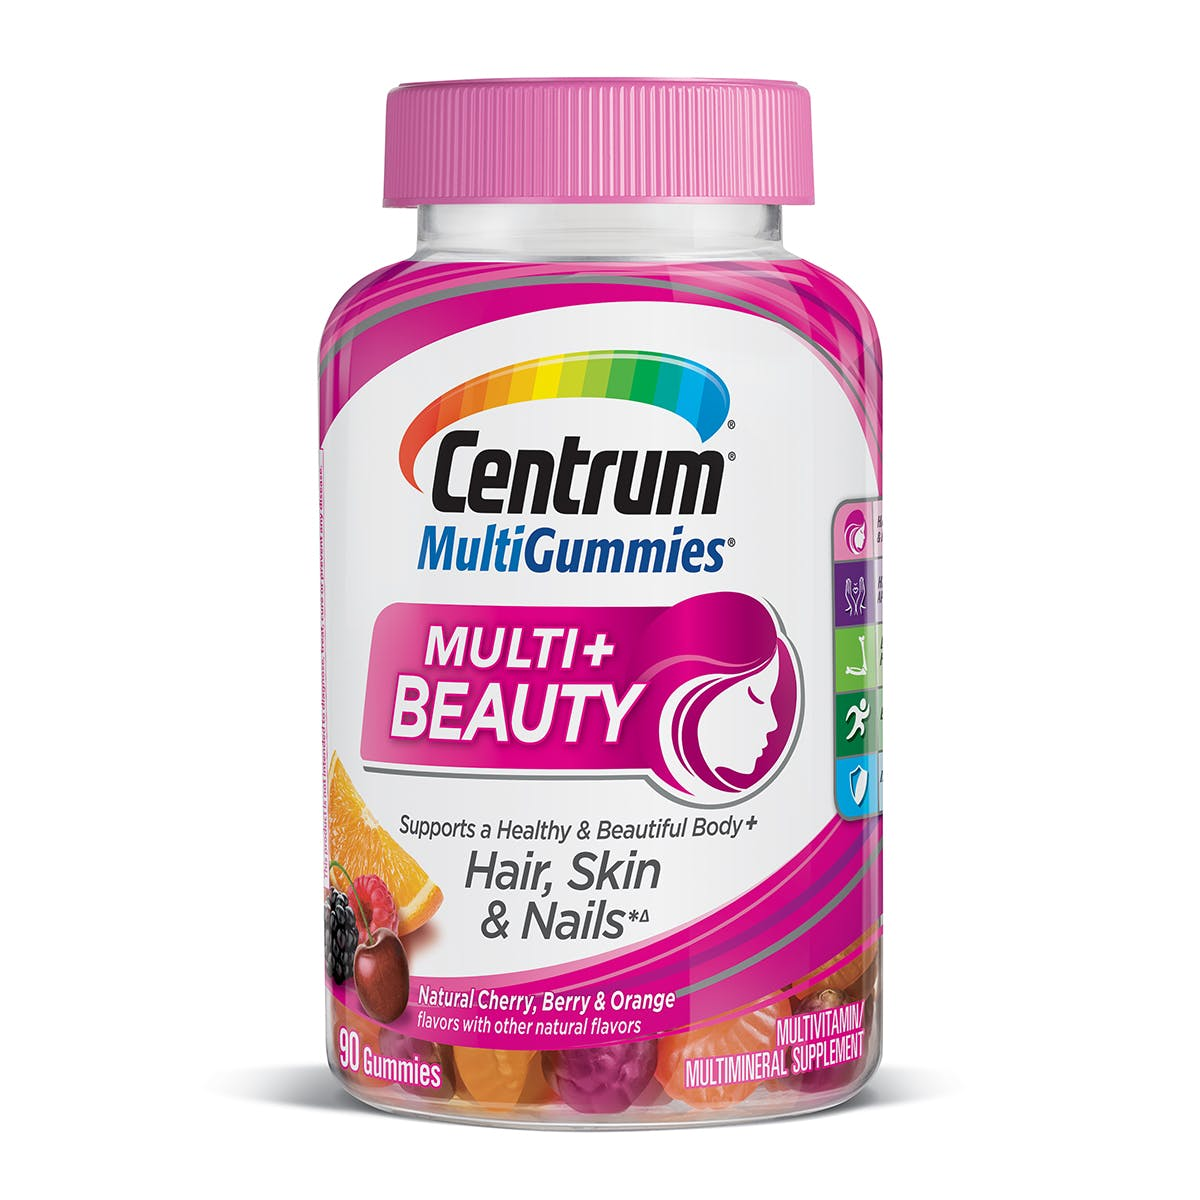 Bottle of Centrum MultiGummies Multi plus Beauty multivitamins